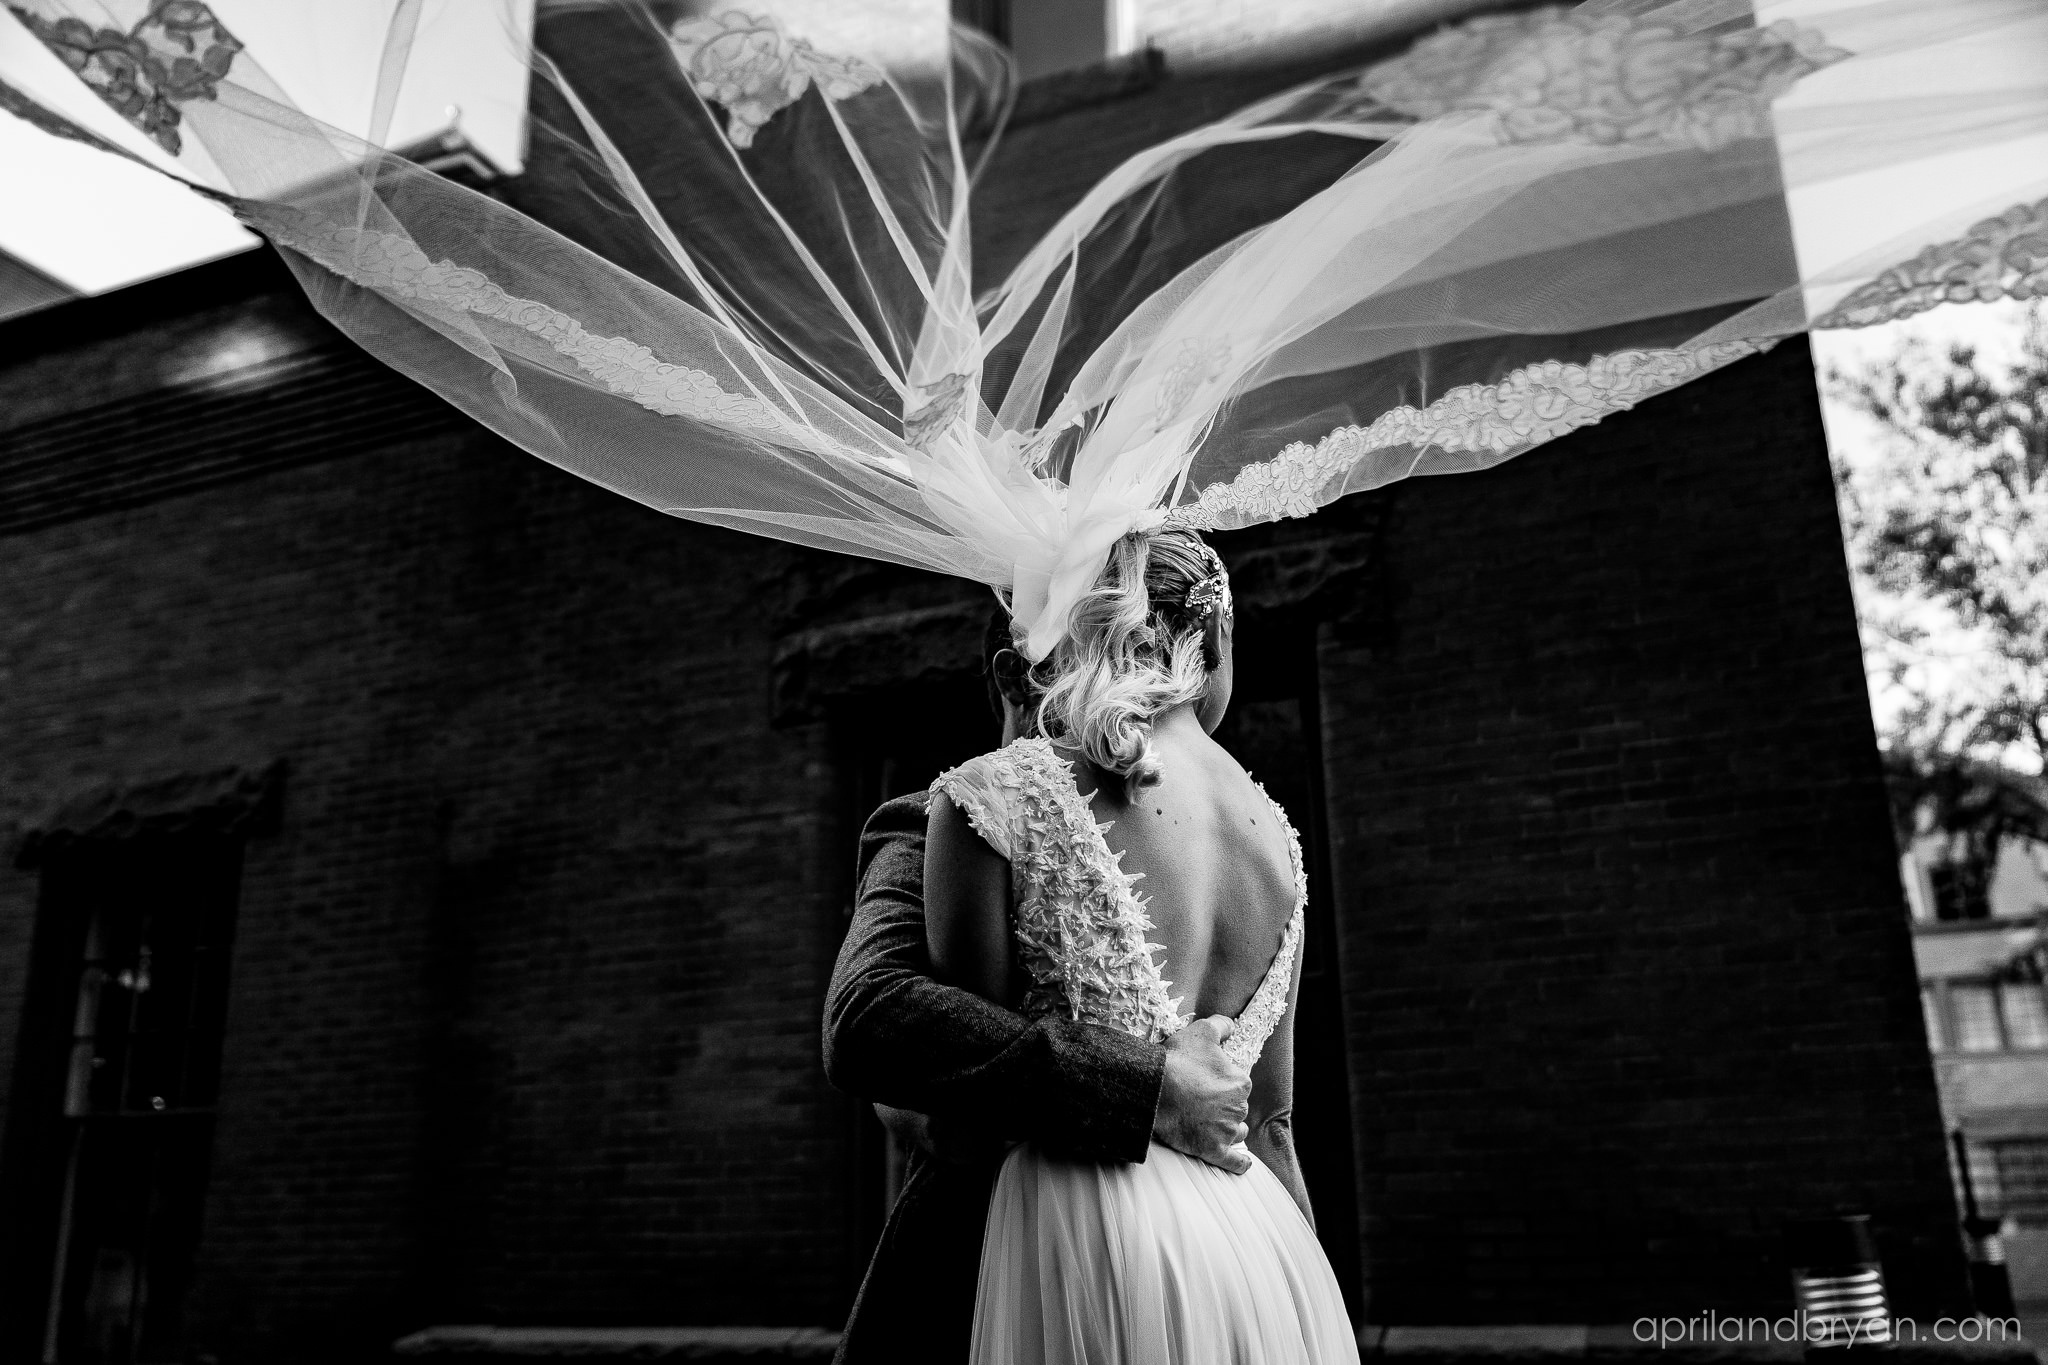 A classically romantic photo of the bride and groom. Nicholas and Rebecca Fasnacht tie the not at Tellus360 on November 1, 2019. Captured by April & Bryan Photography and featured on Dream Weddings.